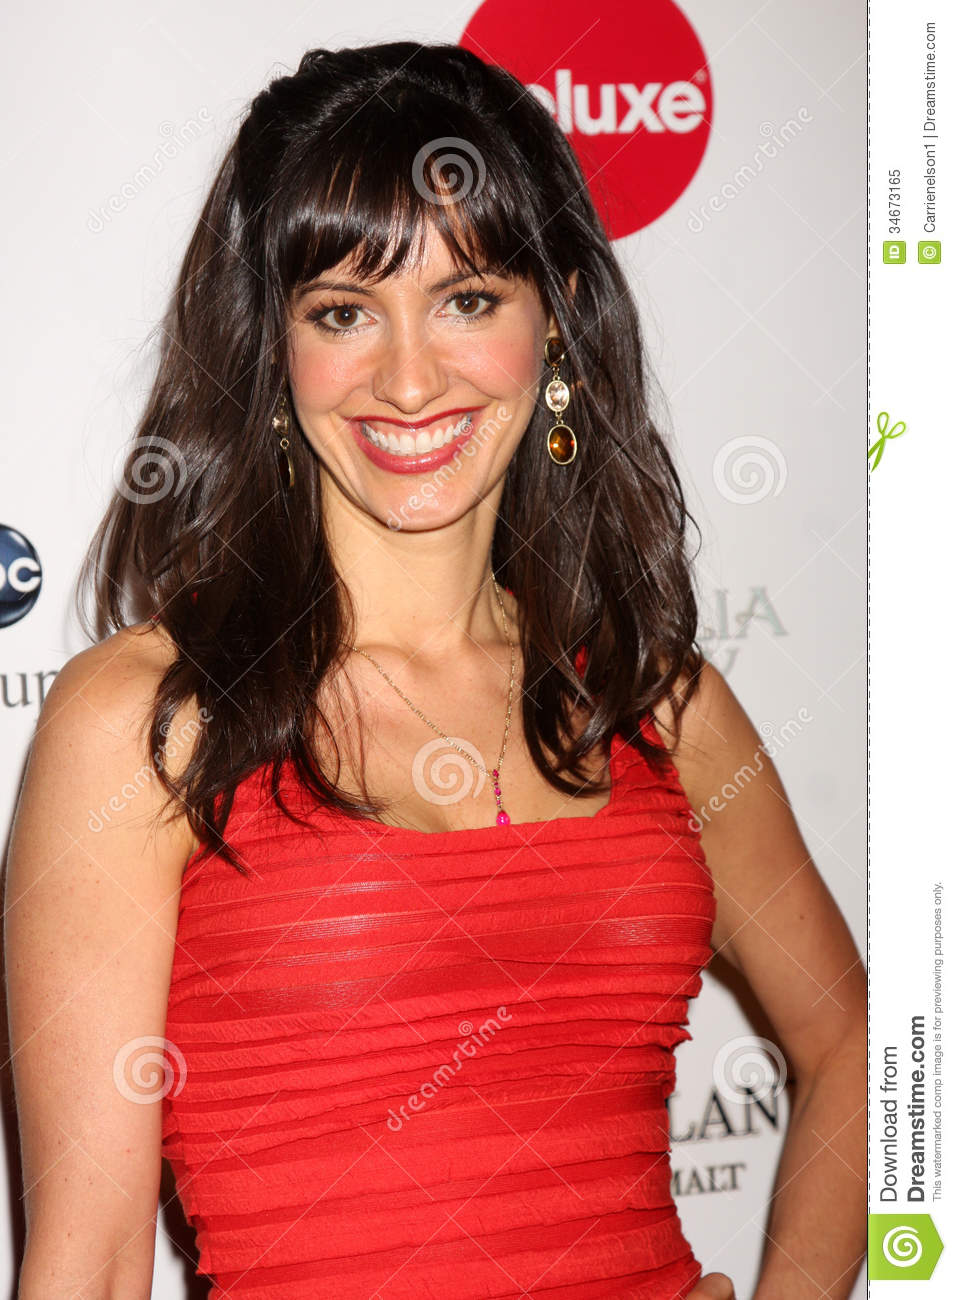 charlene amoia how old